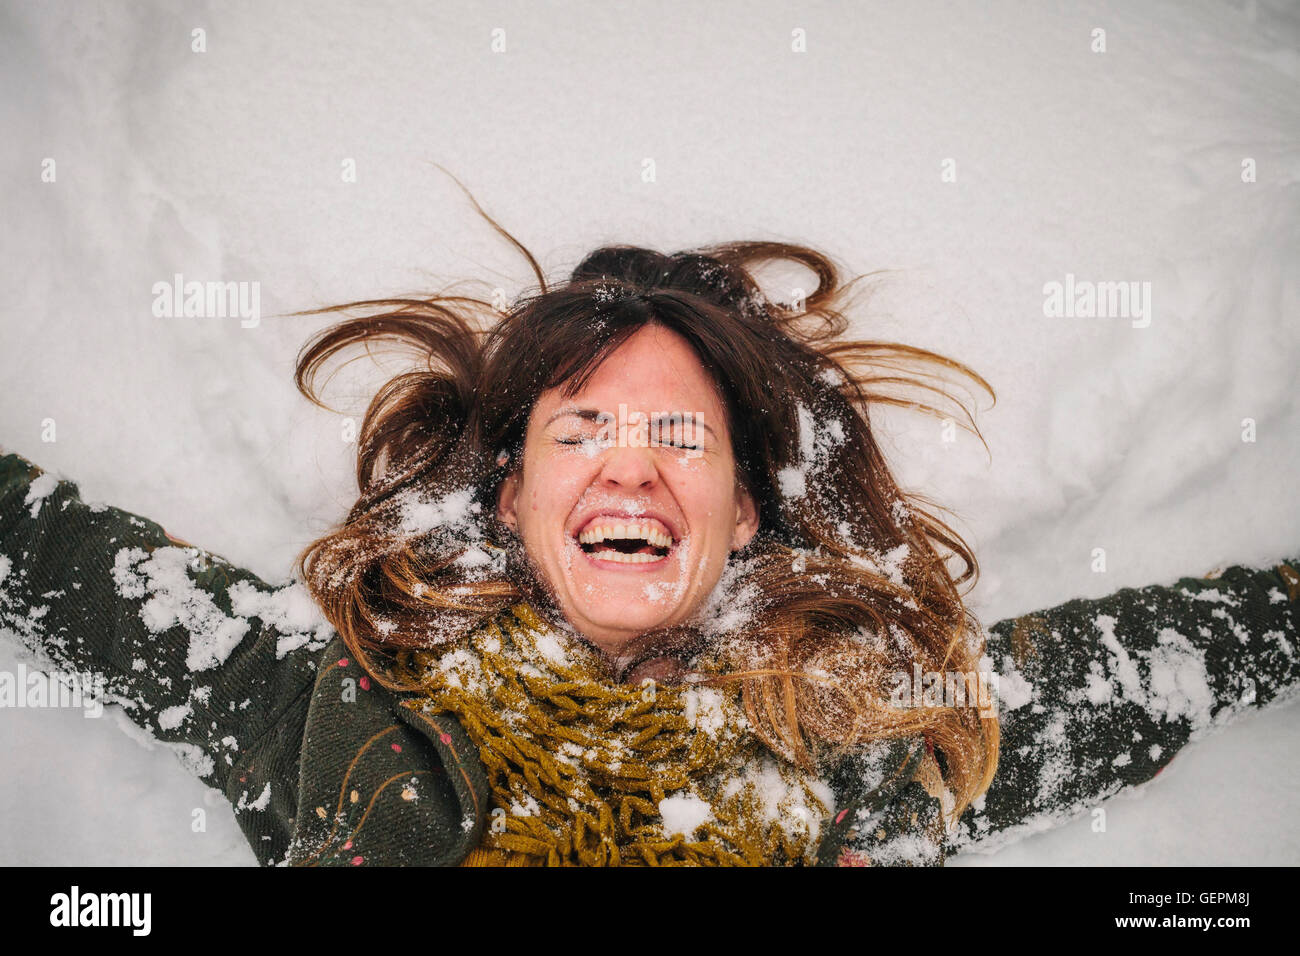 A woman lying on a snow bank with her arms stretched out. - Stock Image